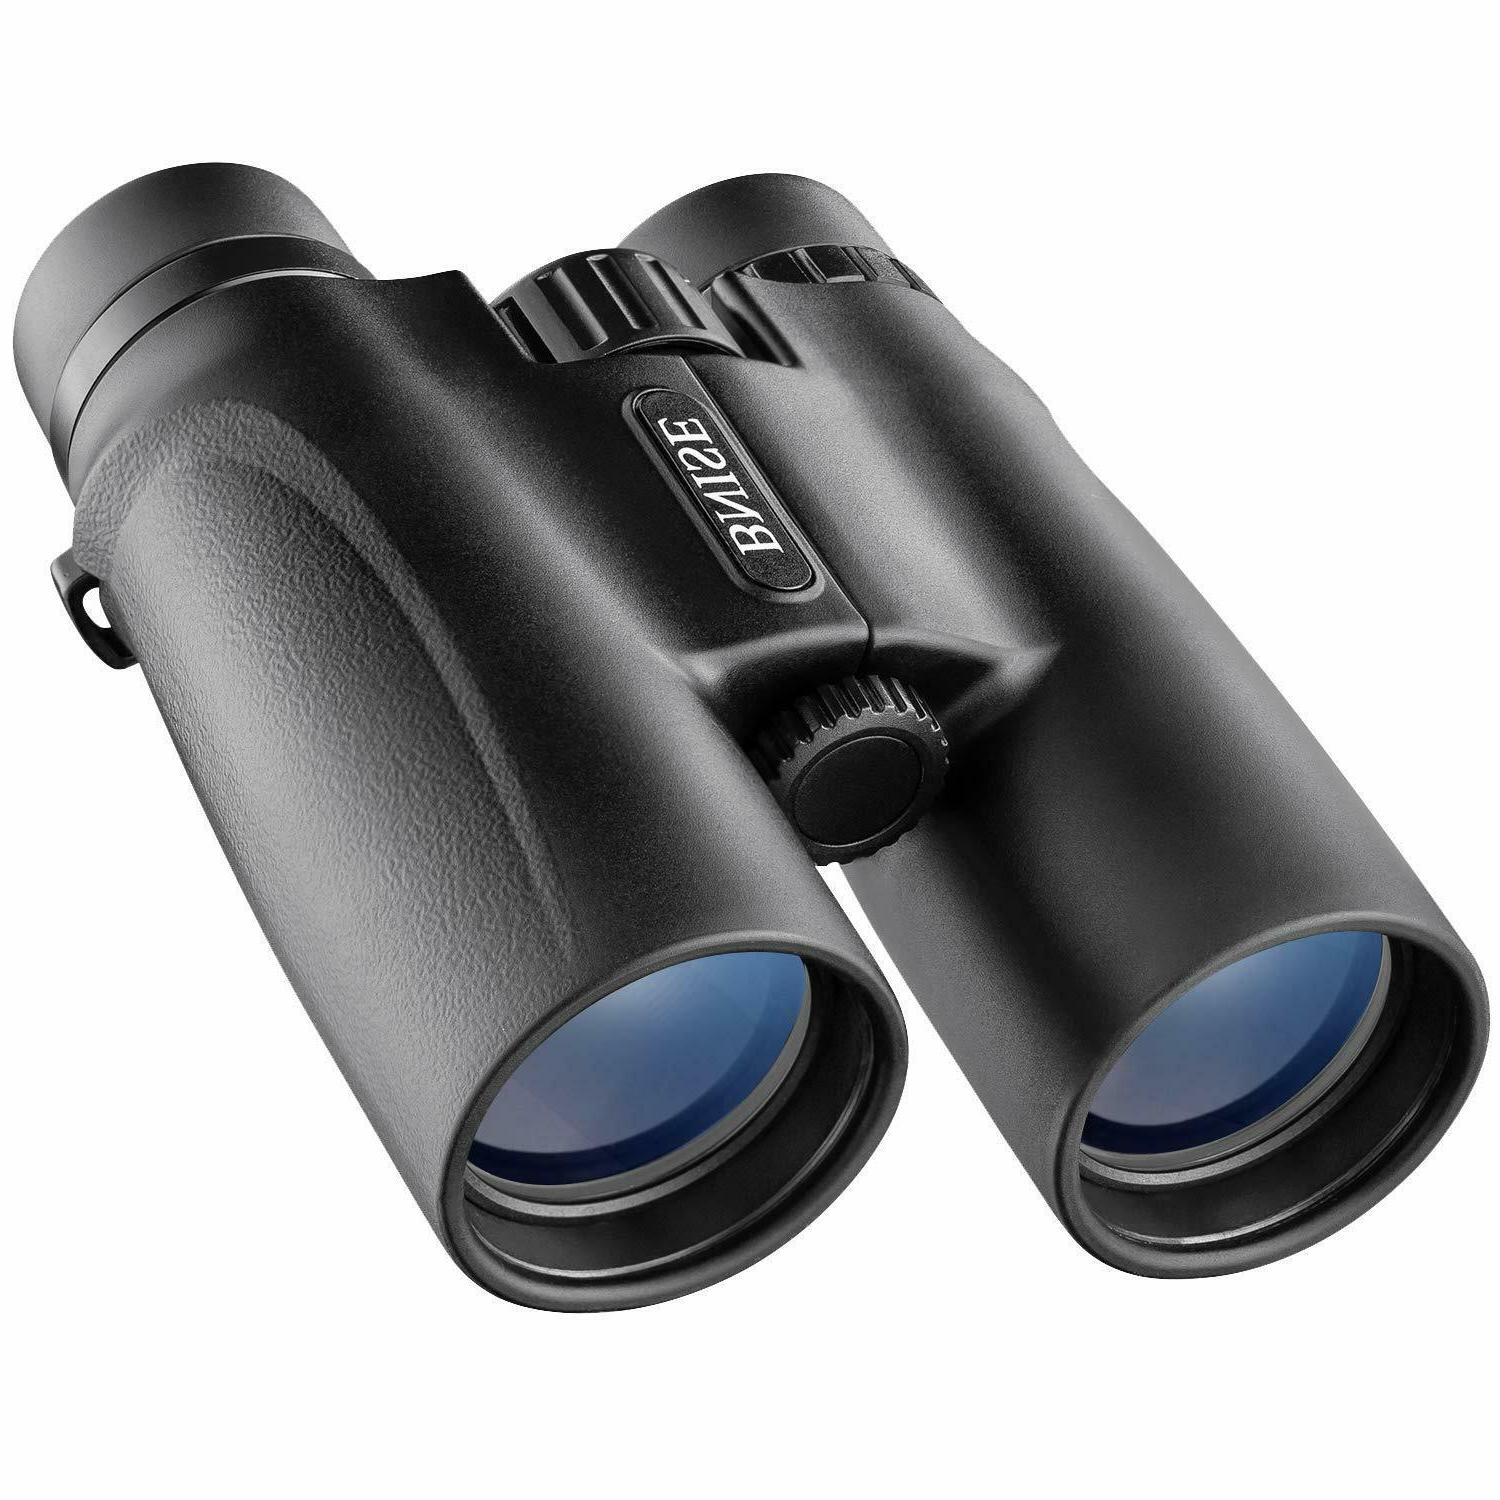 10x42 binoculars compact for adult high power